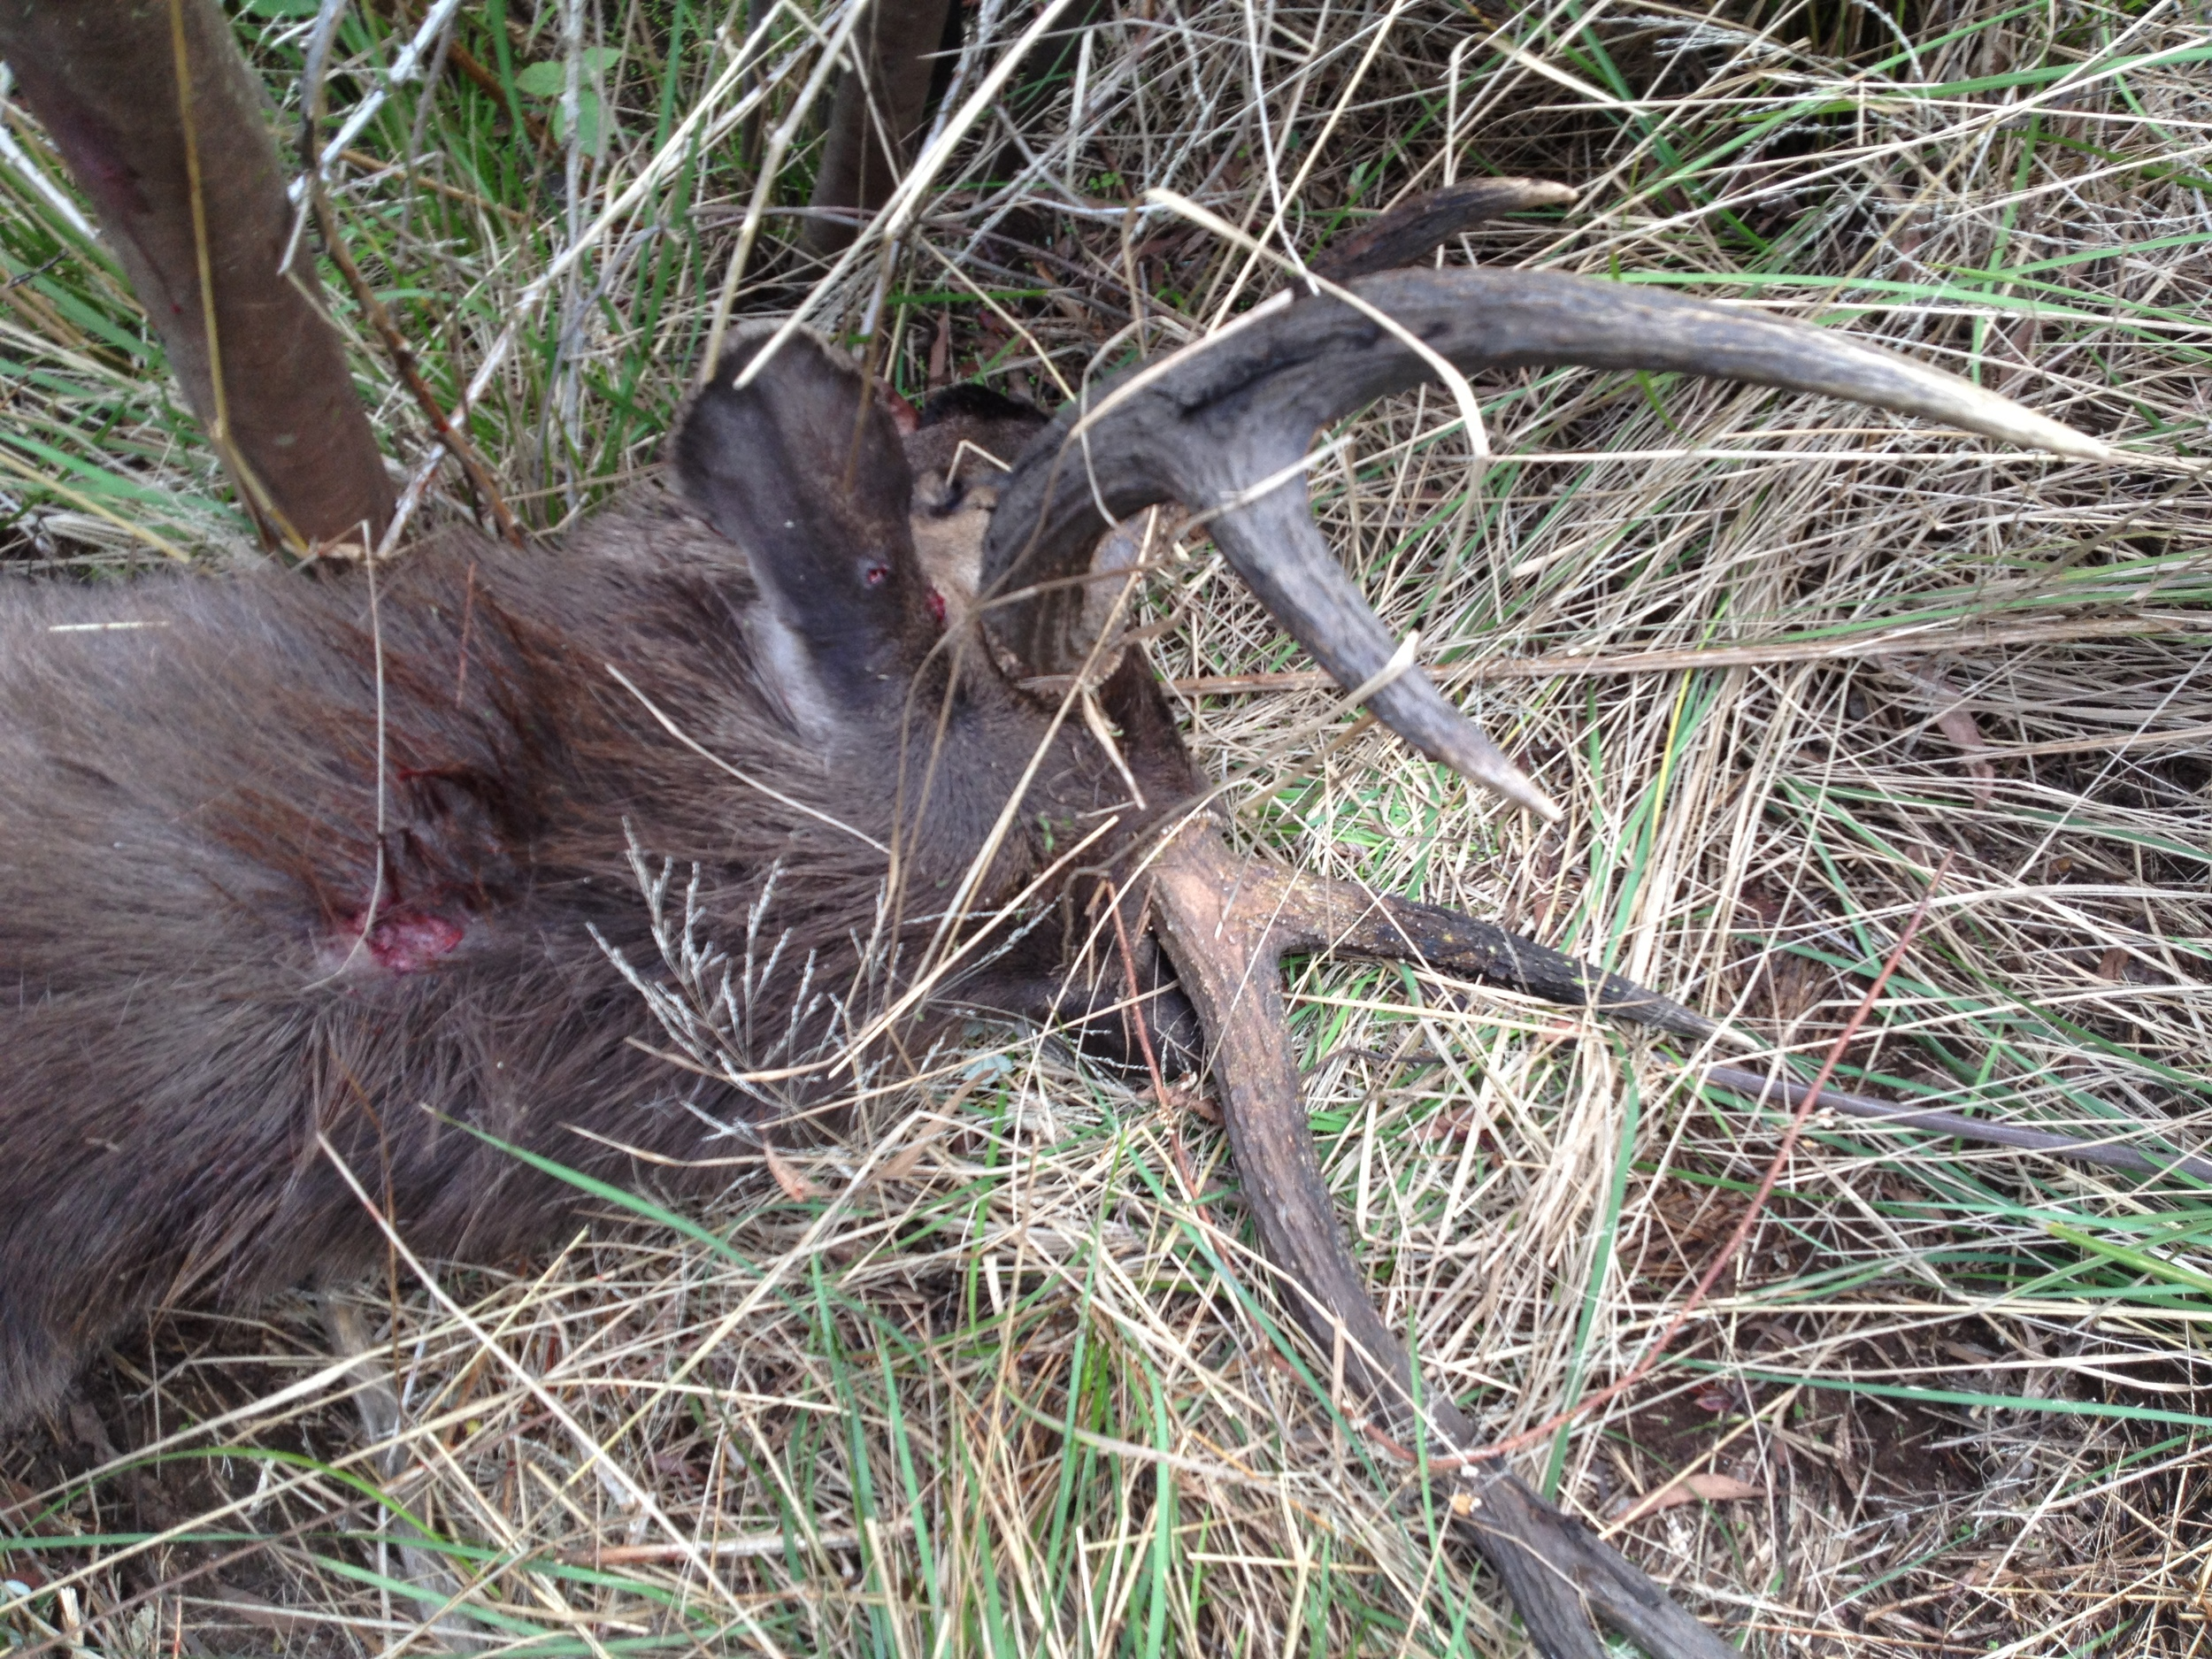 Great shot taken from high above with a .93 through the top of the neck. This big sambar stag didnt take on step.